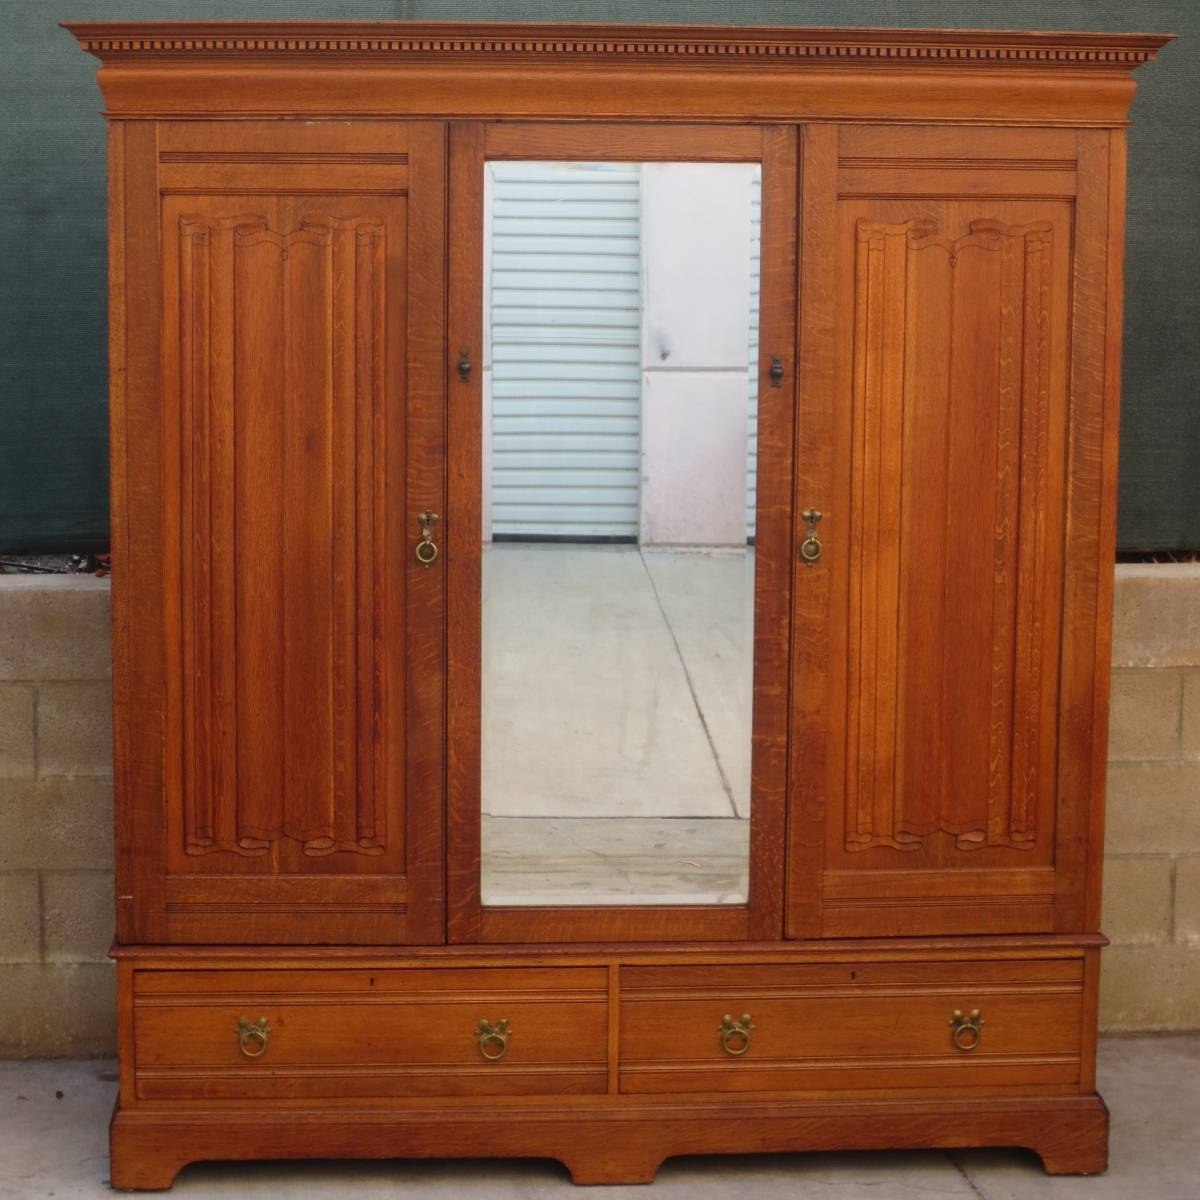 Antique Armoires, Antique Wardrobes, And Antique Furniture From with regard to Wardrobes And Armoires (Image 3 of 15)